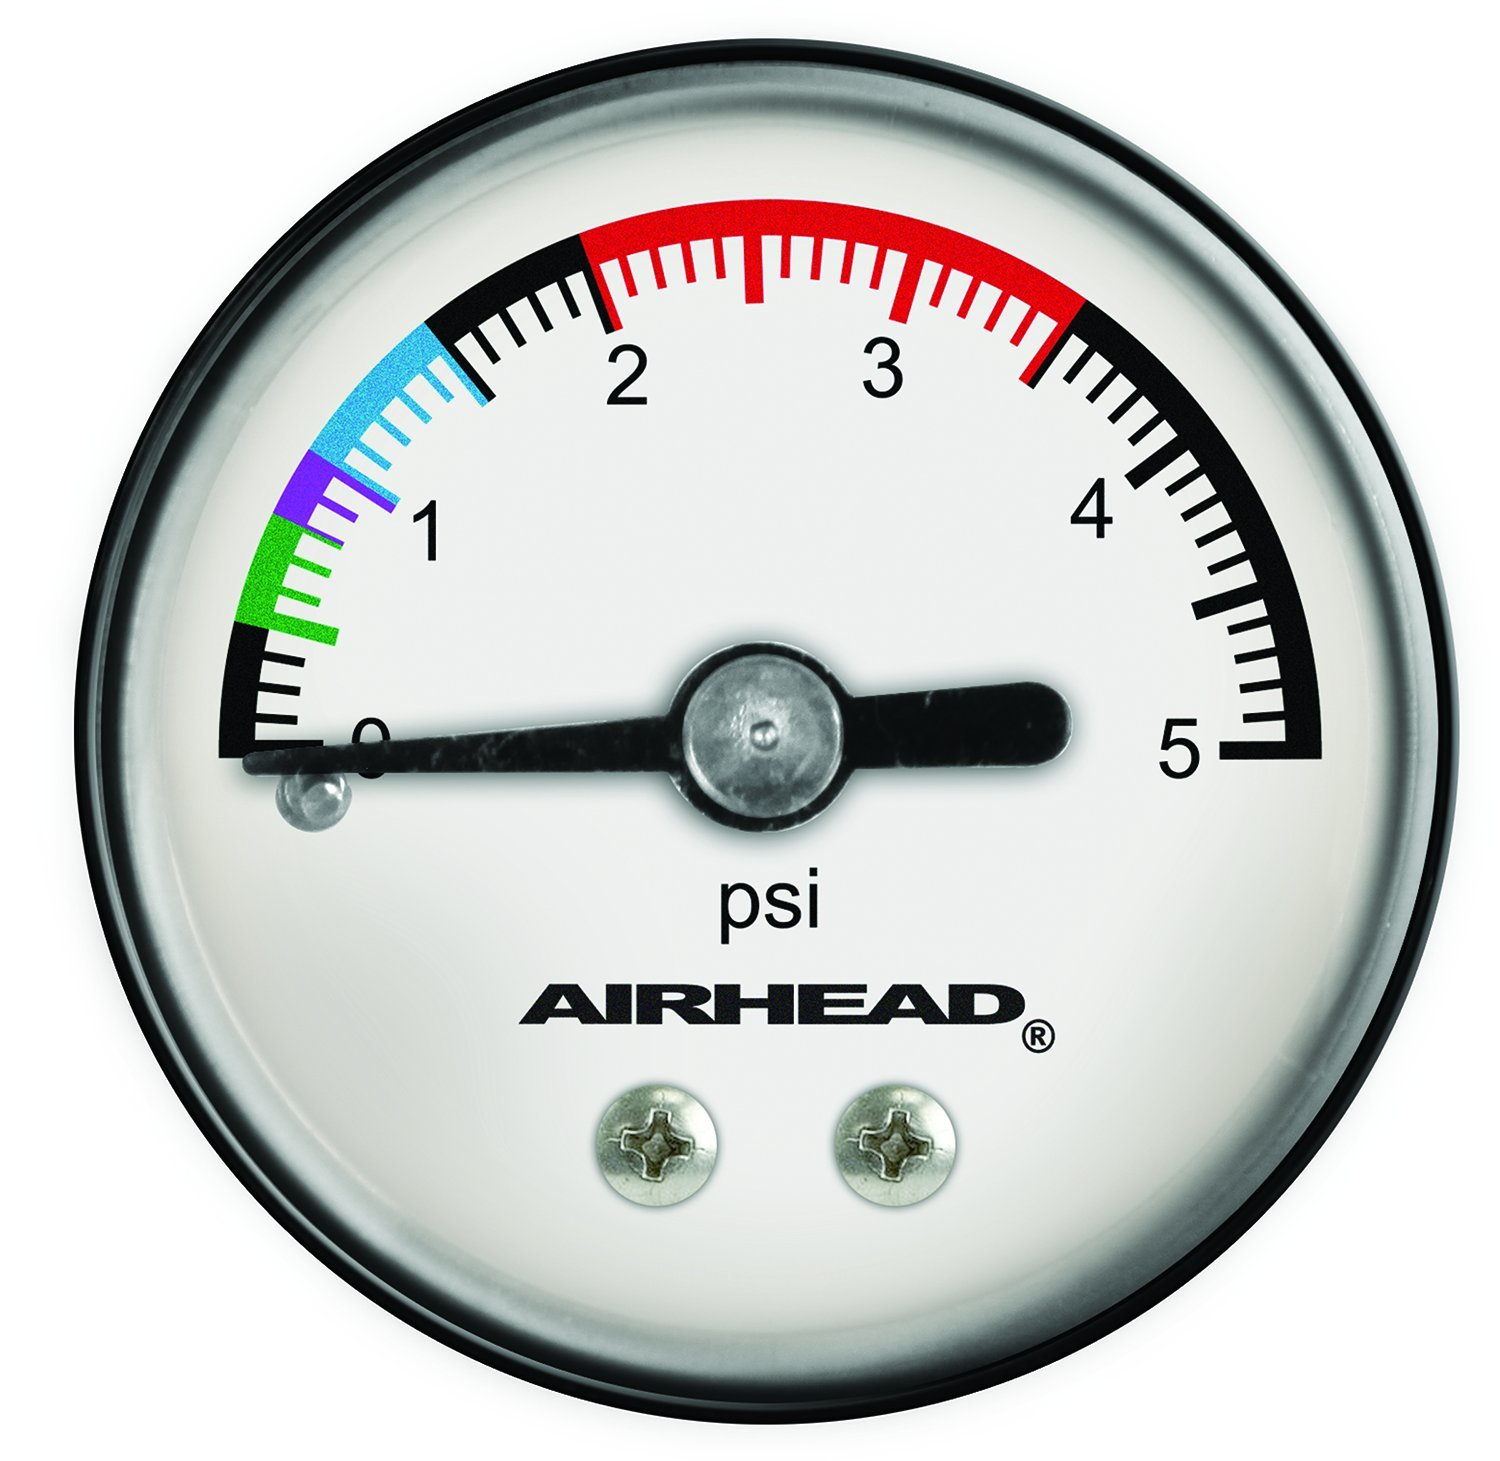 Airhead Pressure Gauge for Inflatables